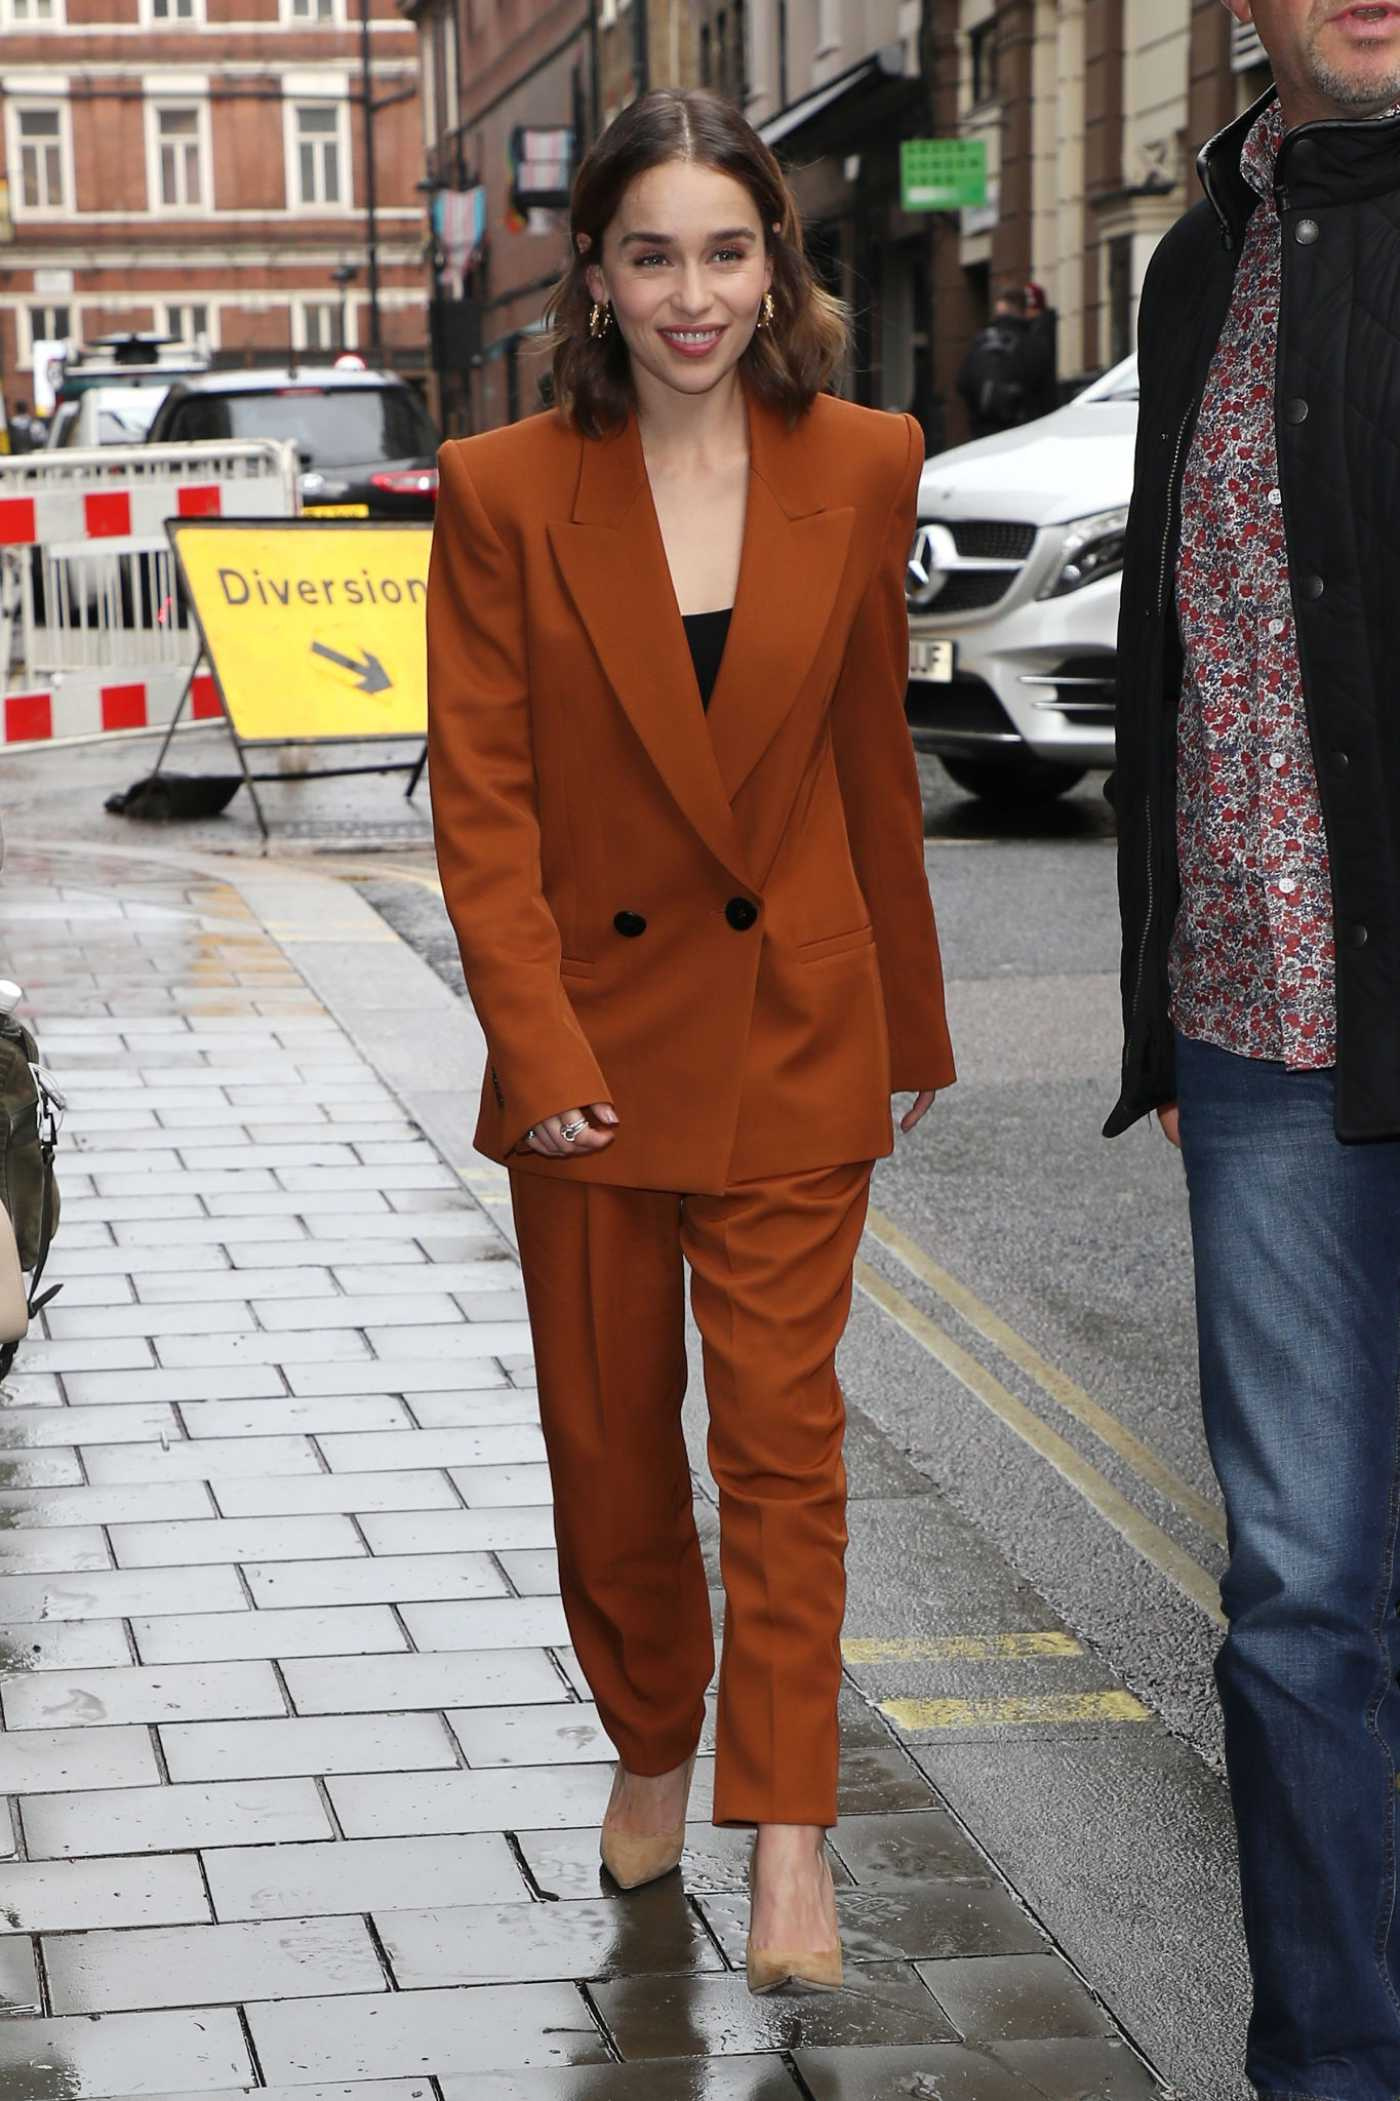 Emilia Clarke in a Brown Suit Arrives at Her Hotel in London 10/23/2019